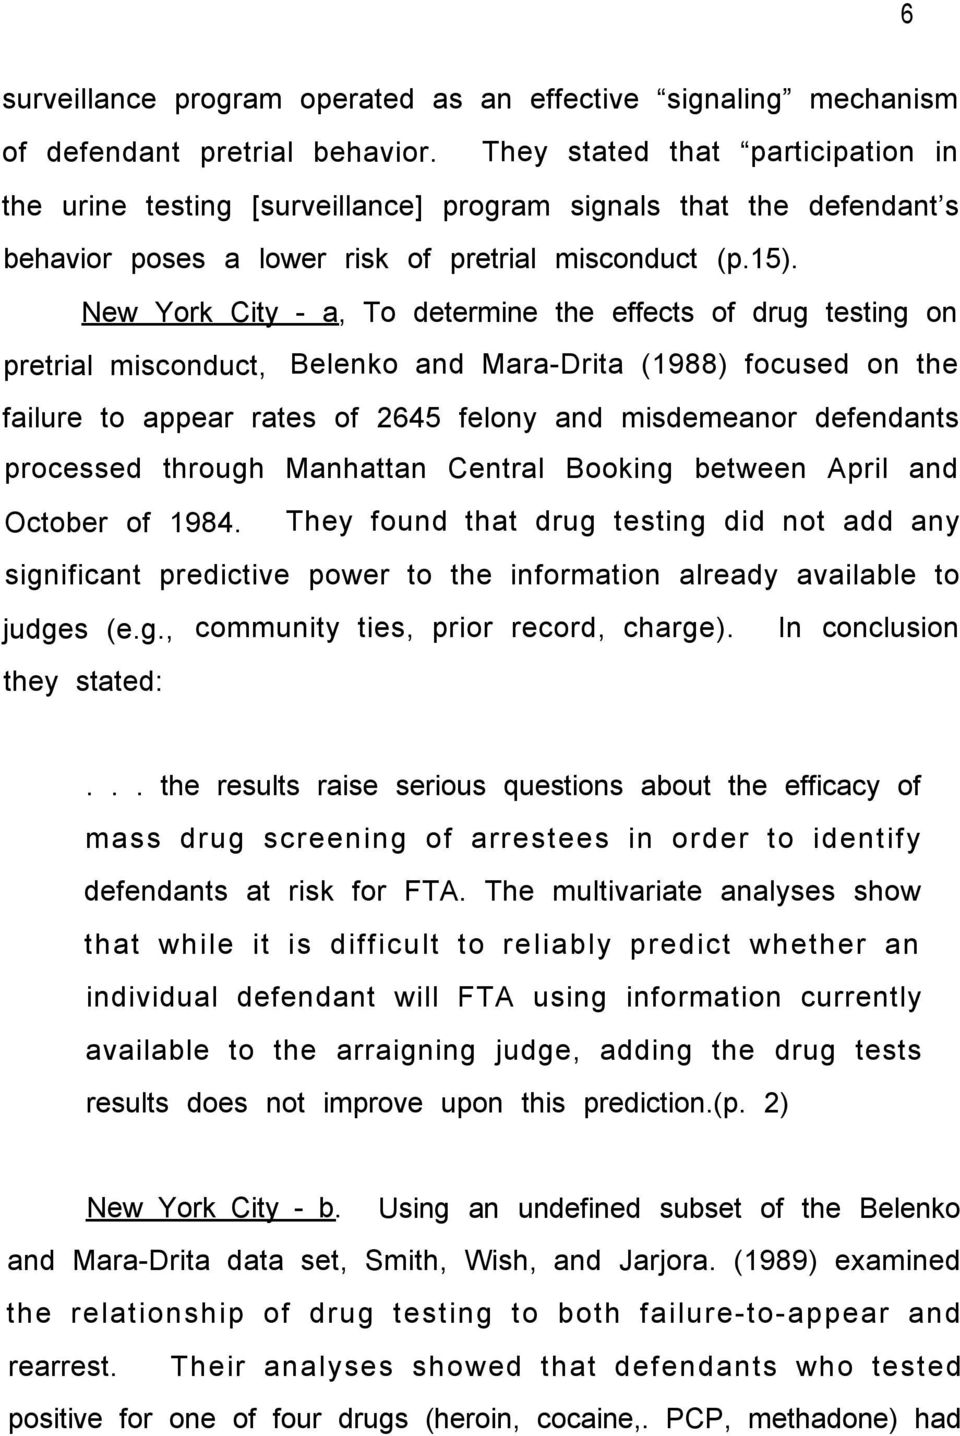 New York City - a, To determine the effects of drug testing on pretrial misconduct, Belenko and Mara-Drita (1988) focused on the failure to appear rates of 2645 felony and misdemeanor defendants